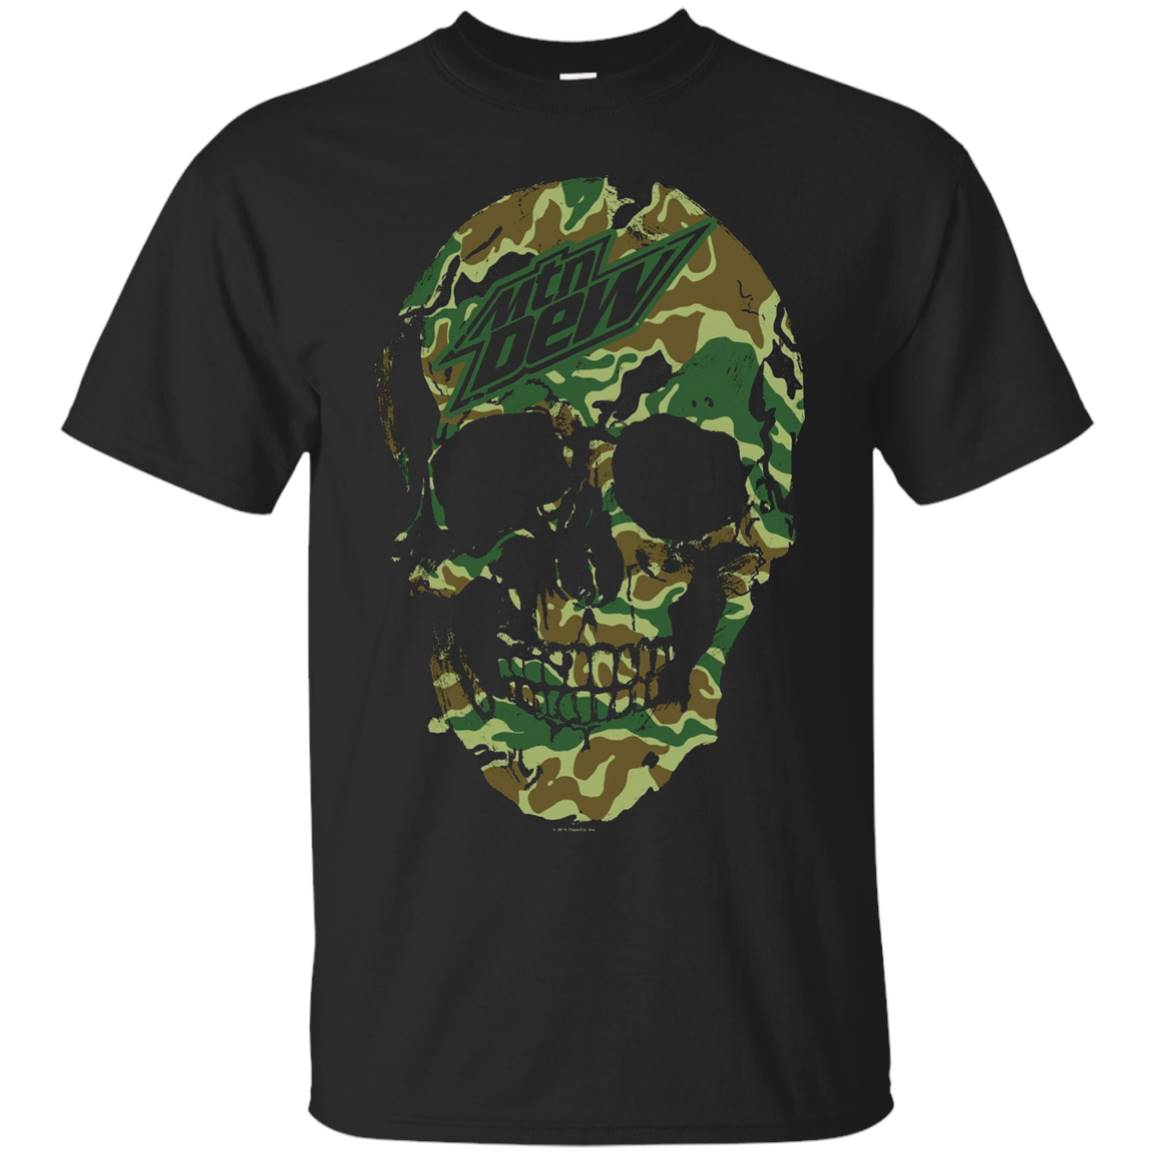 Mountain Dew Skull T-Shirt Soft Touch